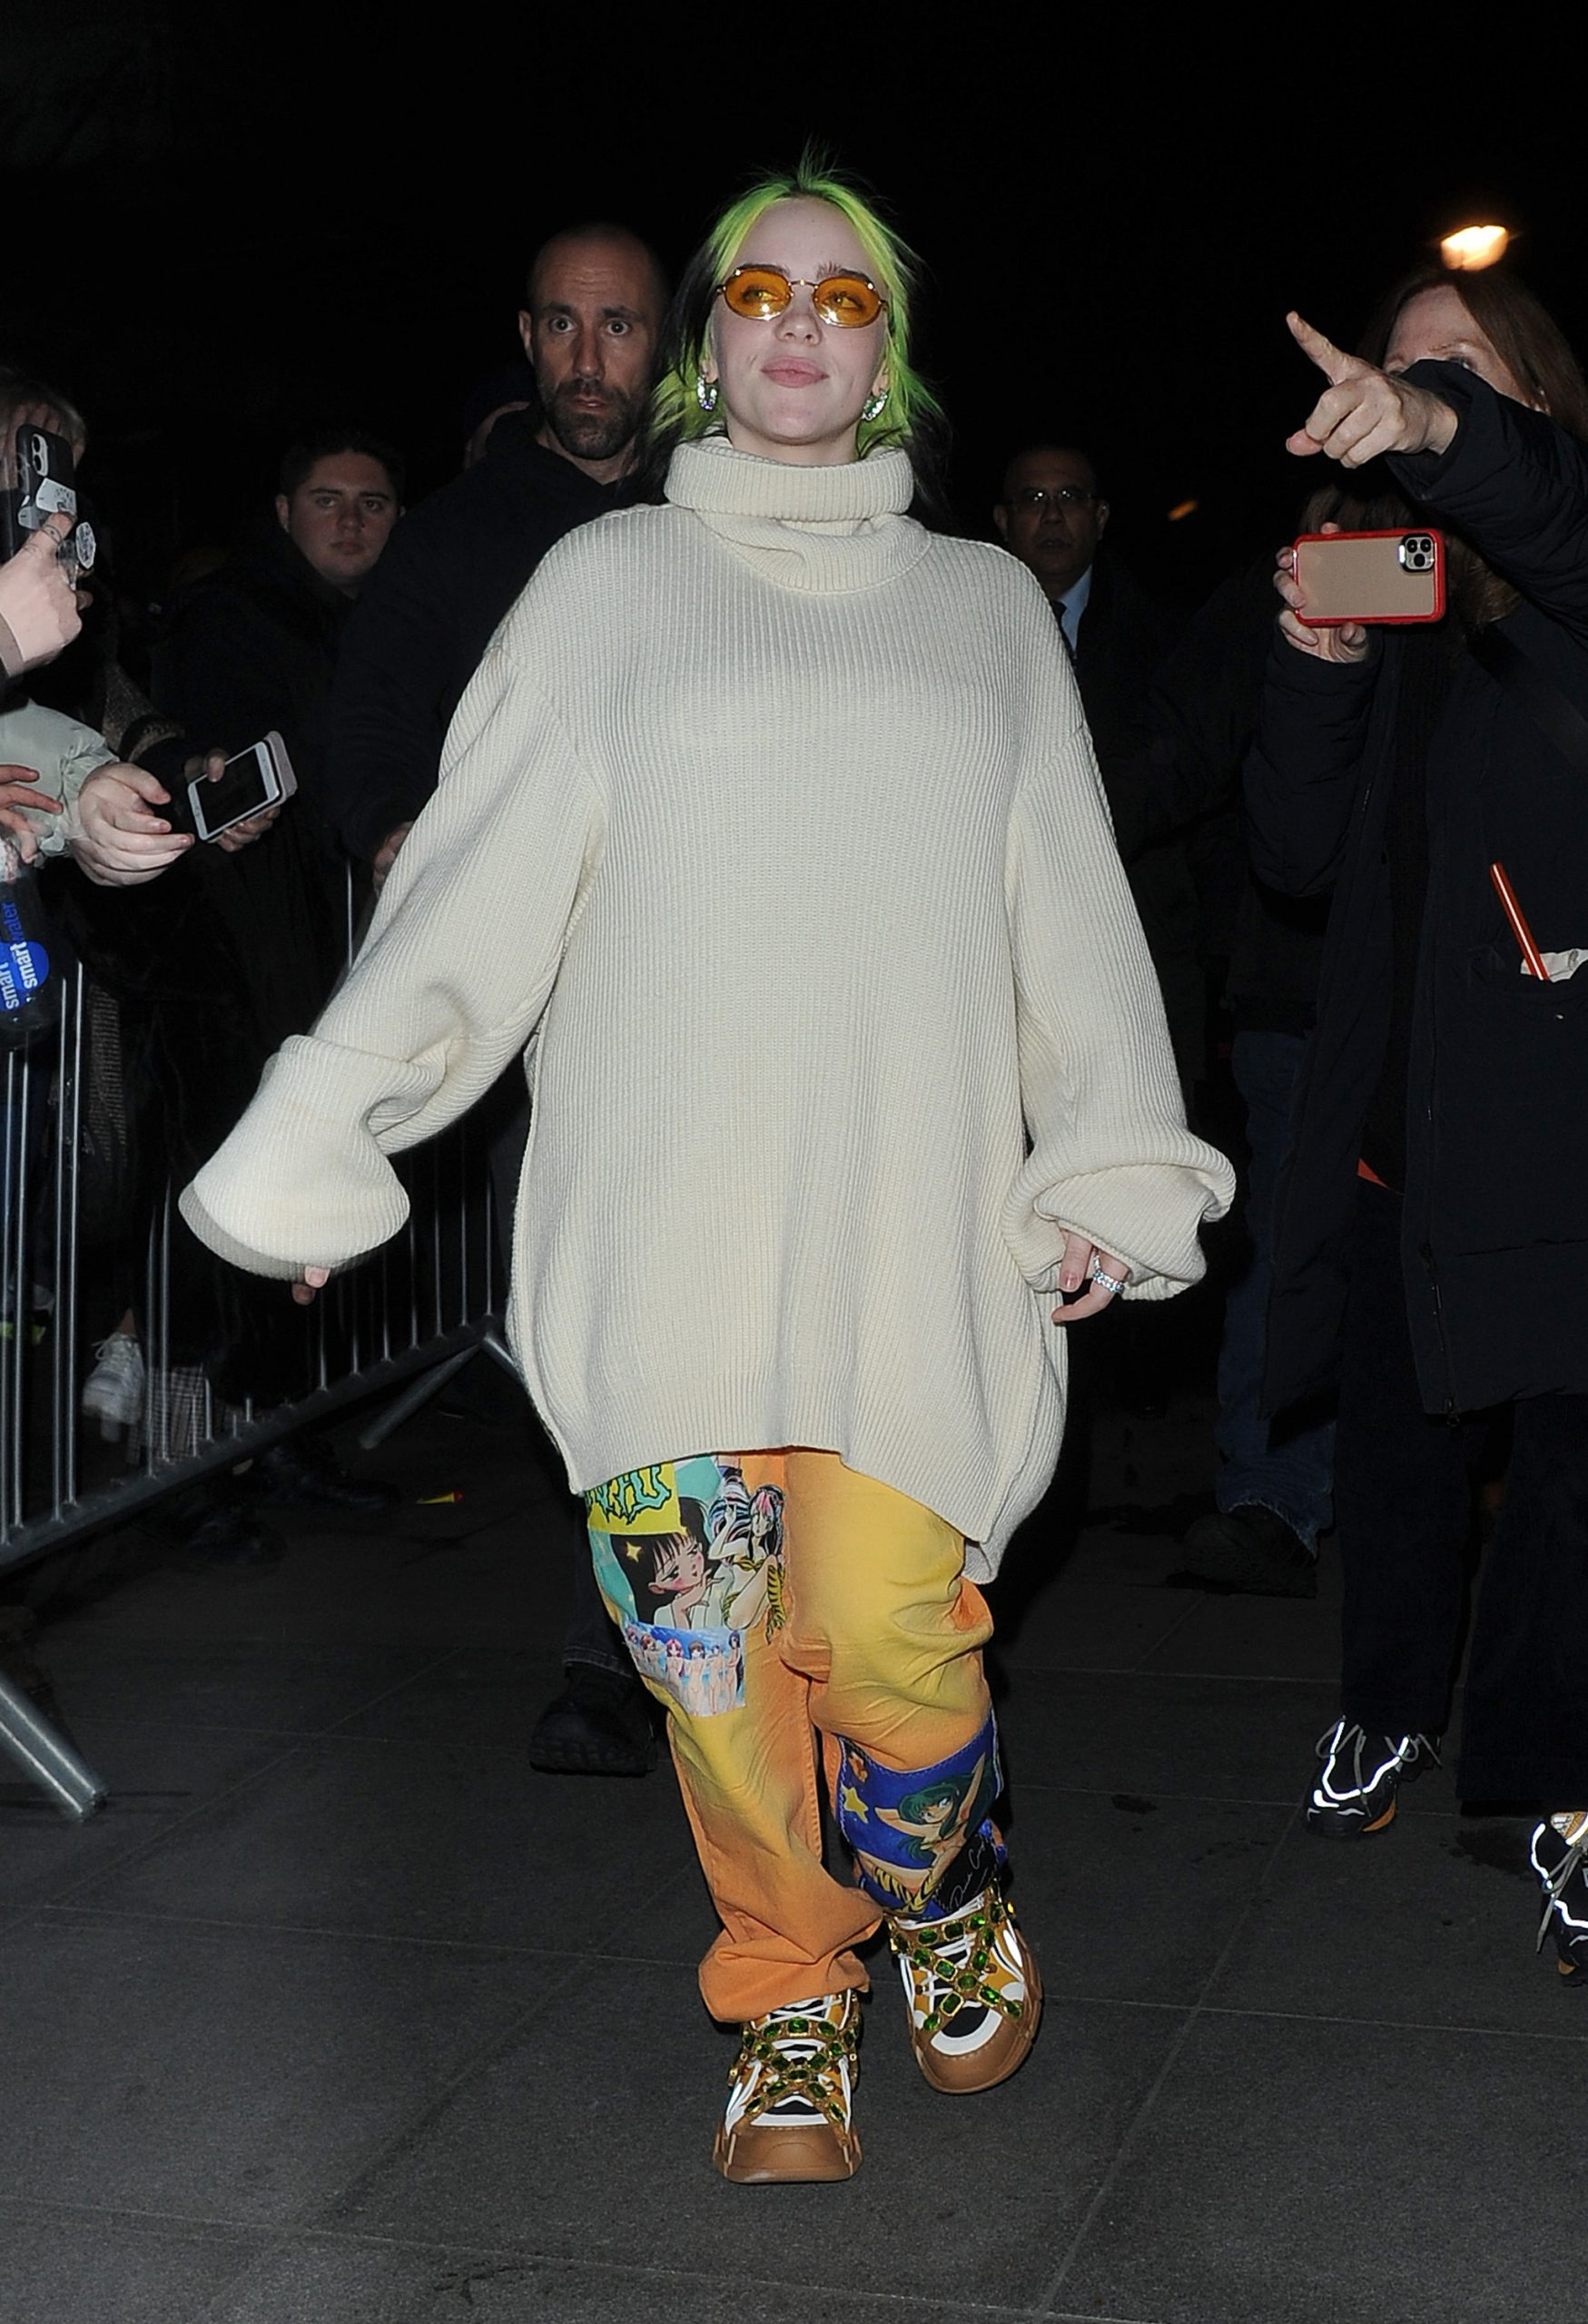 Billie Eilish leaving the BBC Radio 1 studios, having co-hosted the drive time show with Nick Grimshaw. The Brit Award winner was wearing typically outlandish fashion